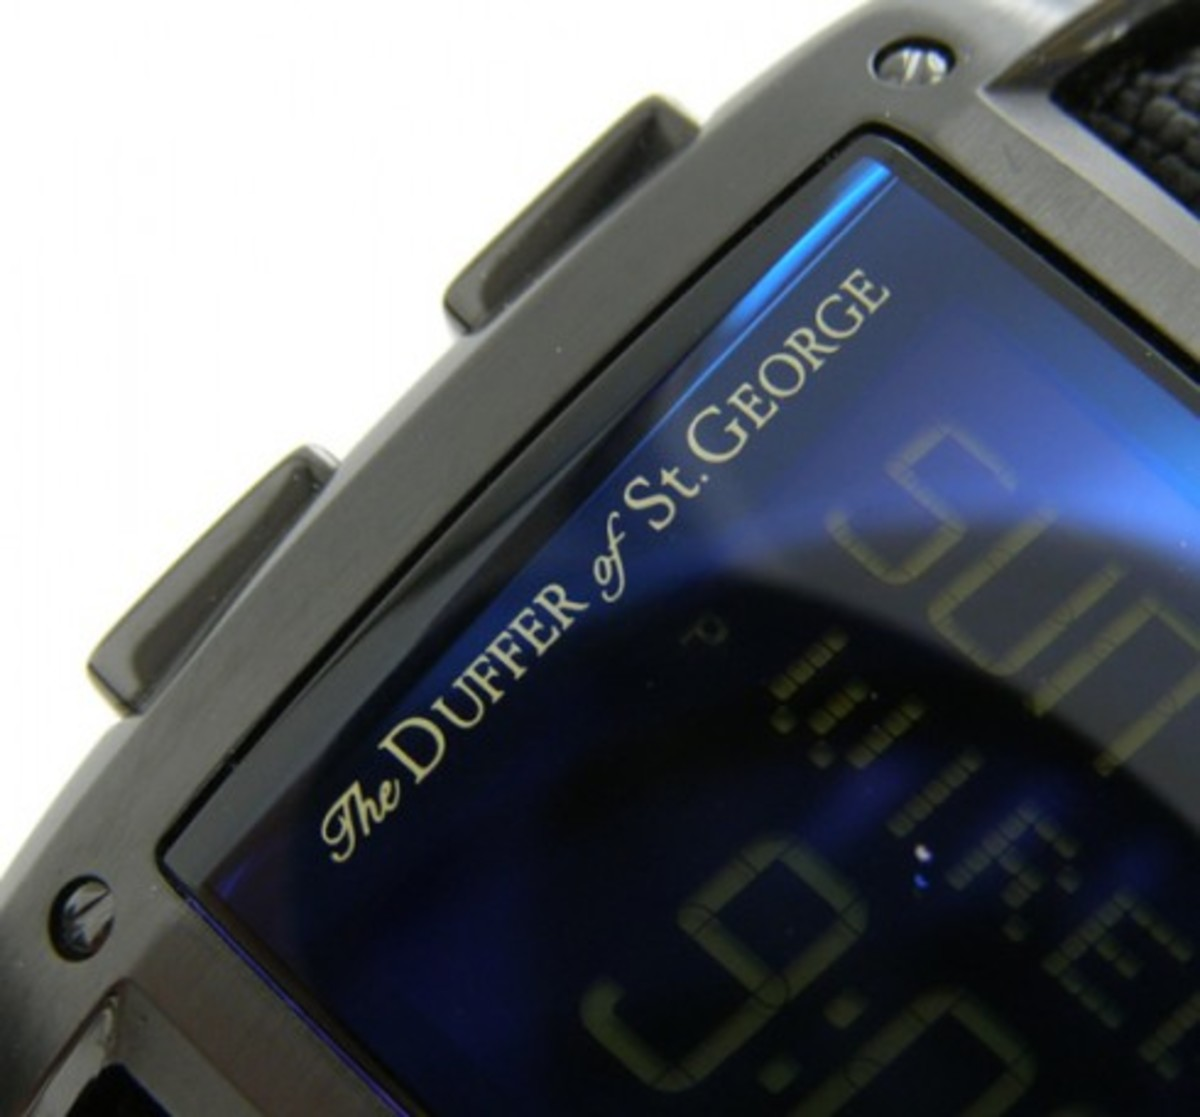 The DUFFER of St. GEORGE x WIRED - AGBH041 Watch